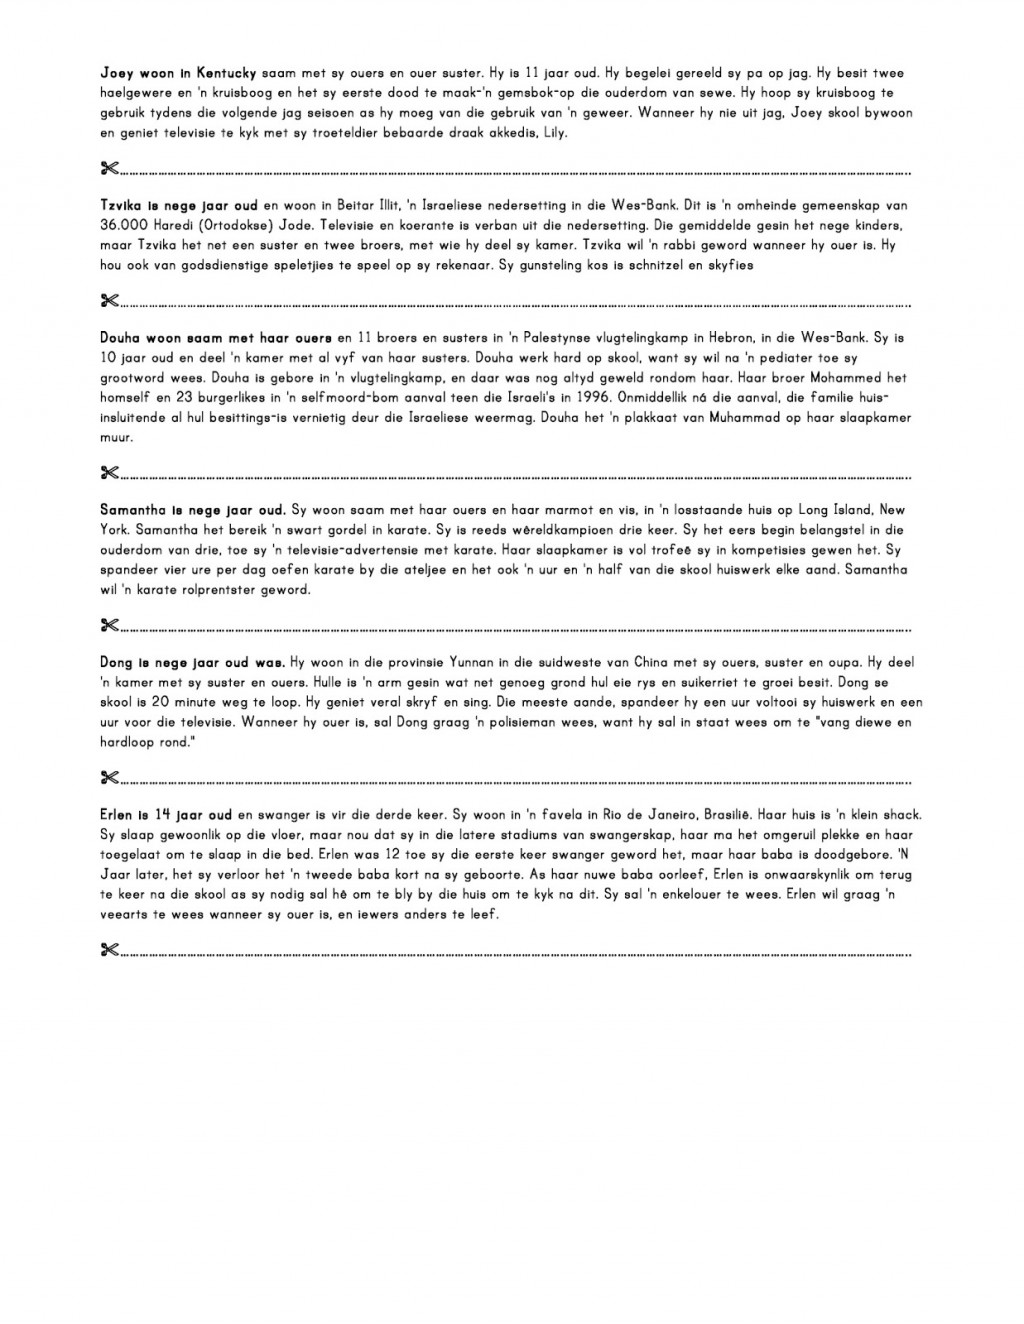 018 My School Essay Example Foto2btext Page Amazing Dream For Class 10 In Urdu 1 3 Marathi Large